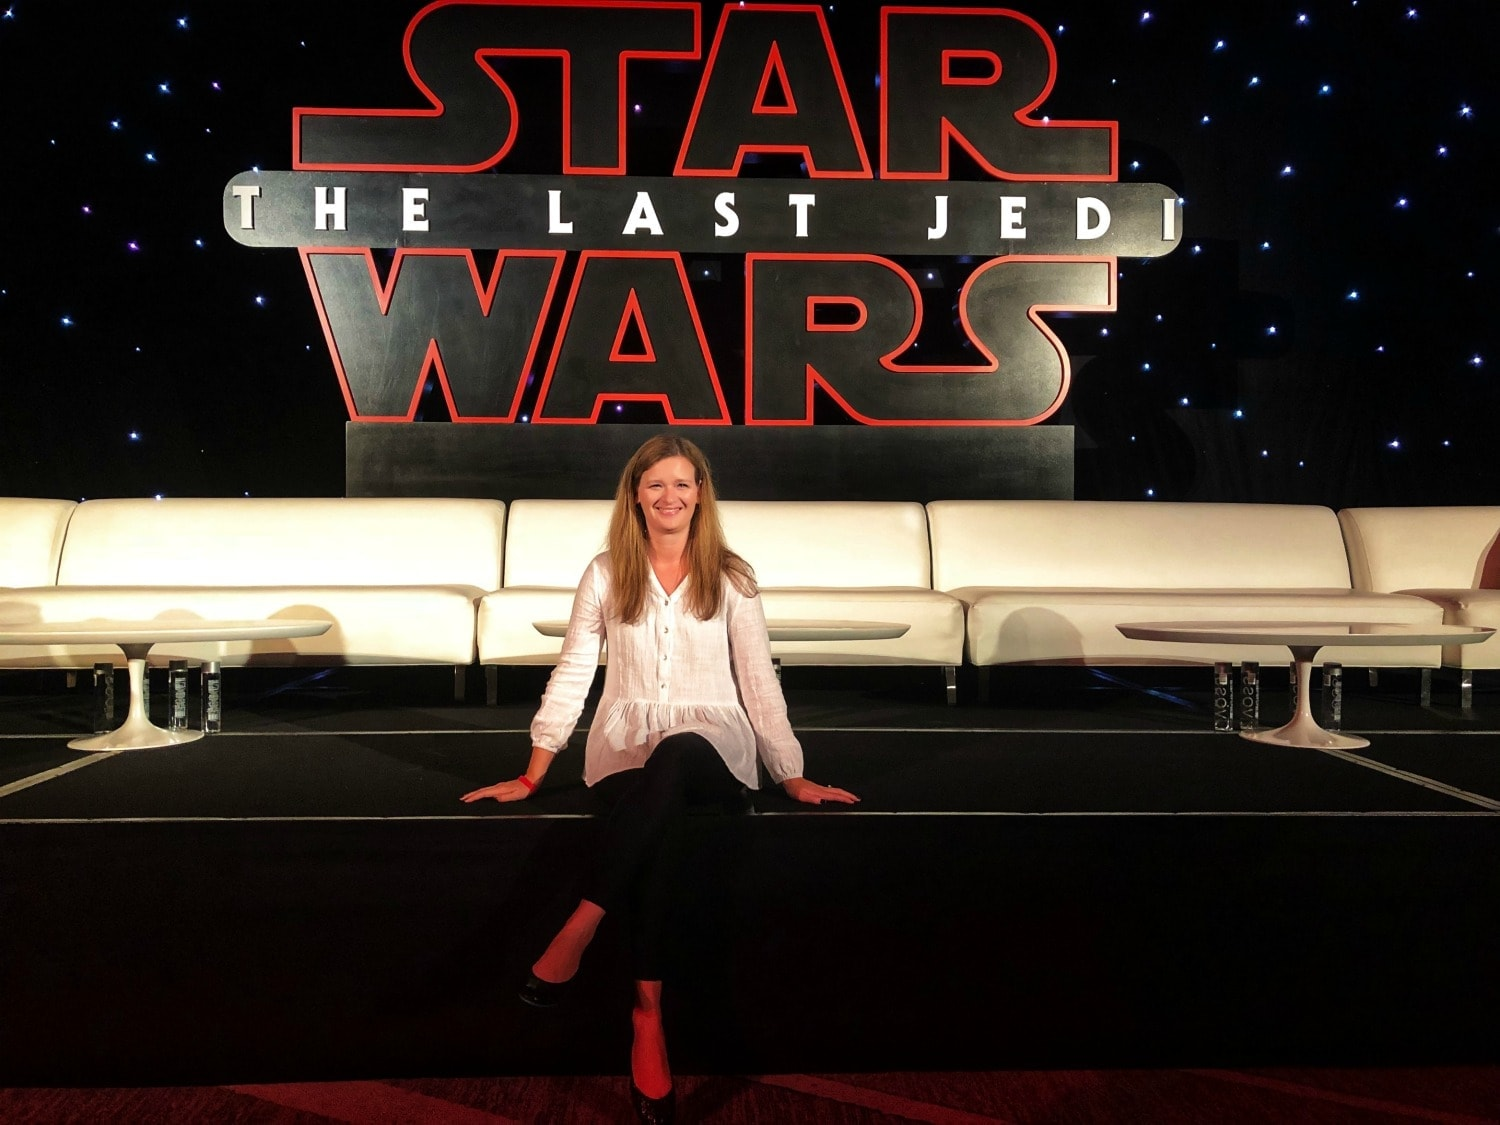 Star Wars the Last Jedi Press Conference